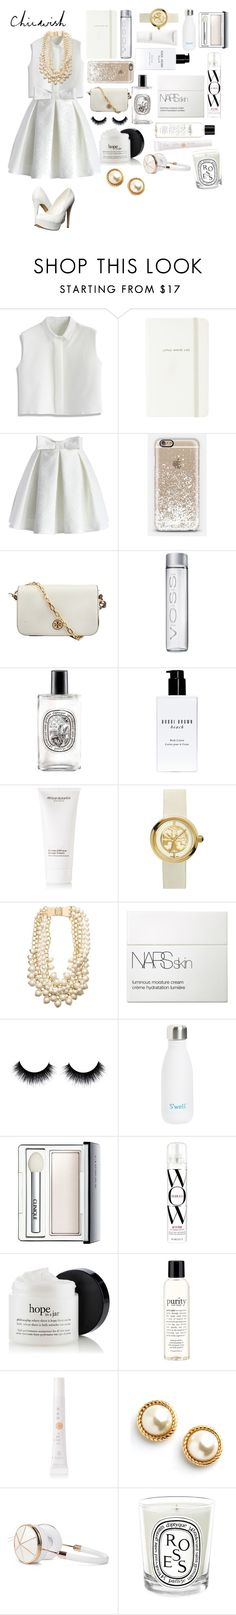 """Little white lie"" by lacrosse-19 ❤ liked on Polyvore featuring Chicwish, Kate Spade, Casetify, Tory Burch, Diptyque, Bobbi Brown Cosmetics, African Botanics, NARS Cosmetics, S'well and Clinique"